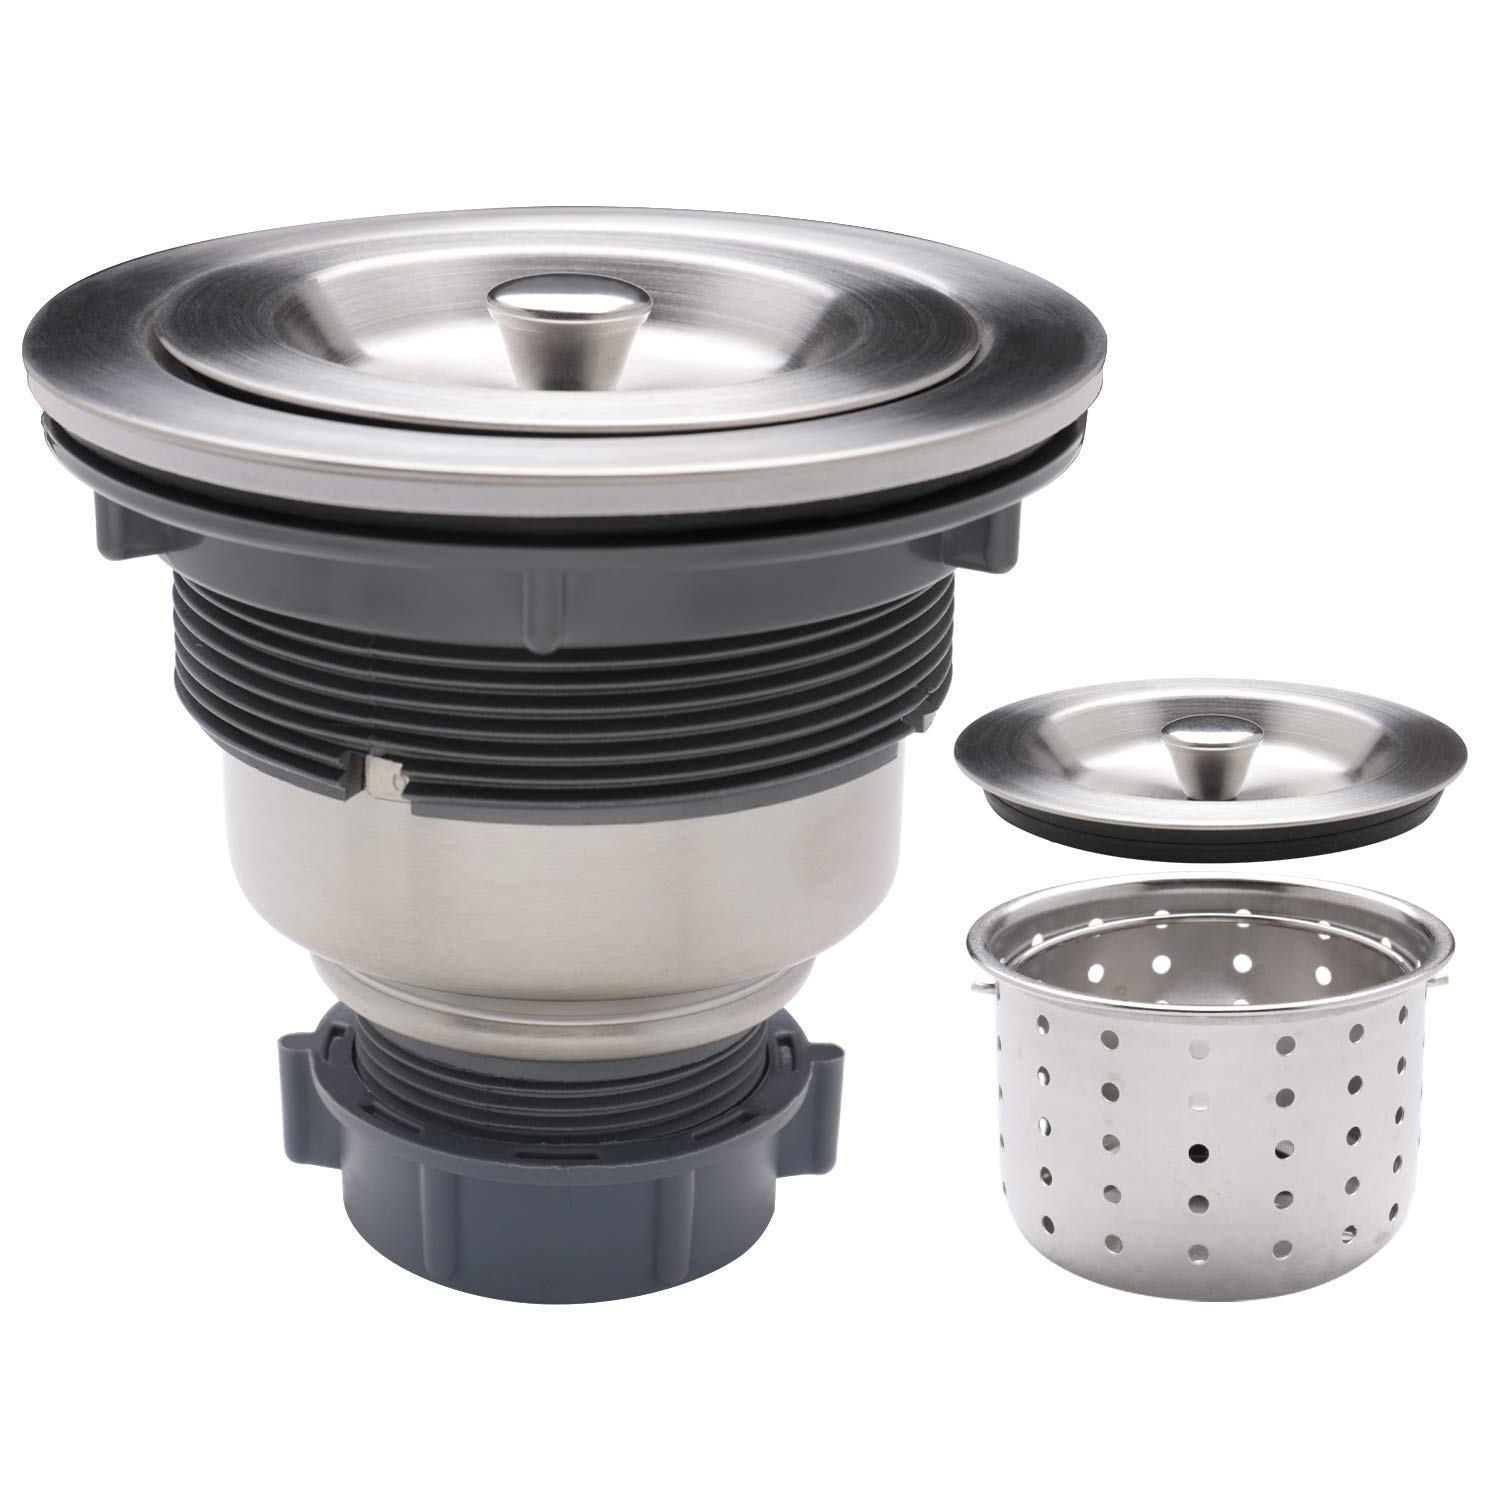 Enbol SS-1 Kitchen Sink Long Threads Strainer, 3-1/2-inch Sink Drain Strainer Assembly with Removable Deep Waste Basket, Sealing Lid, Stainless Steel